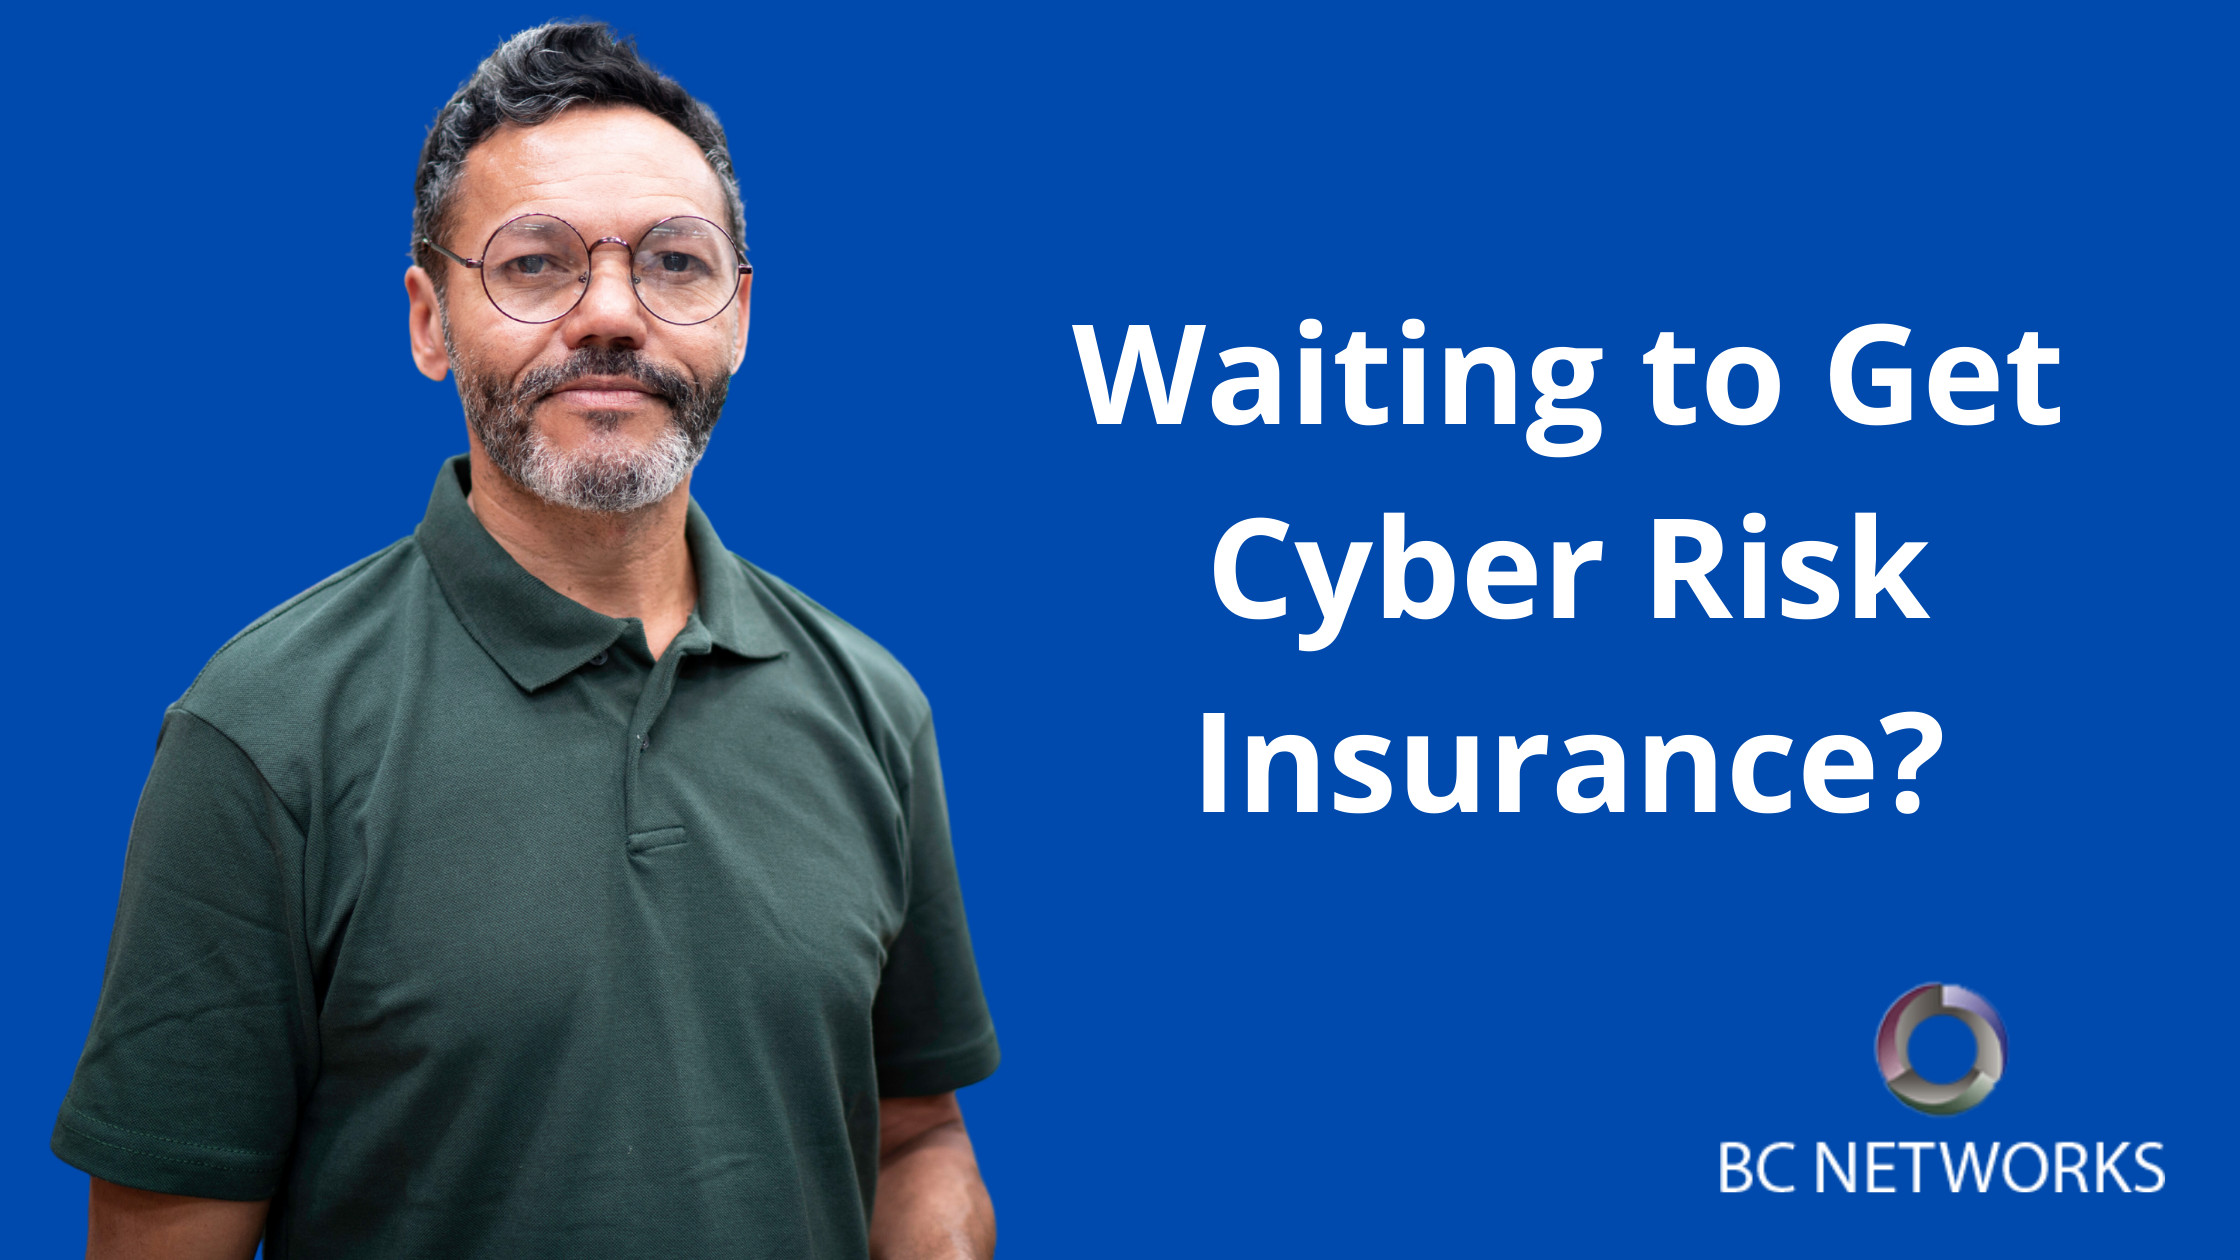 Waiting to Get Cyber Risk Insurance?